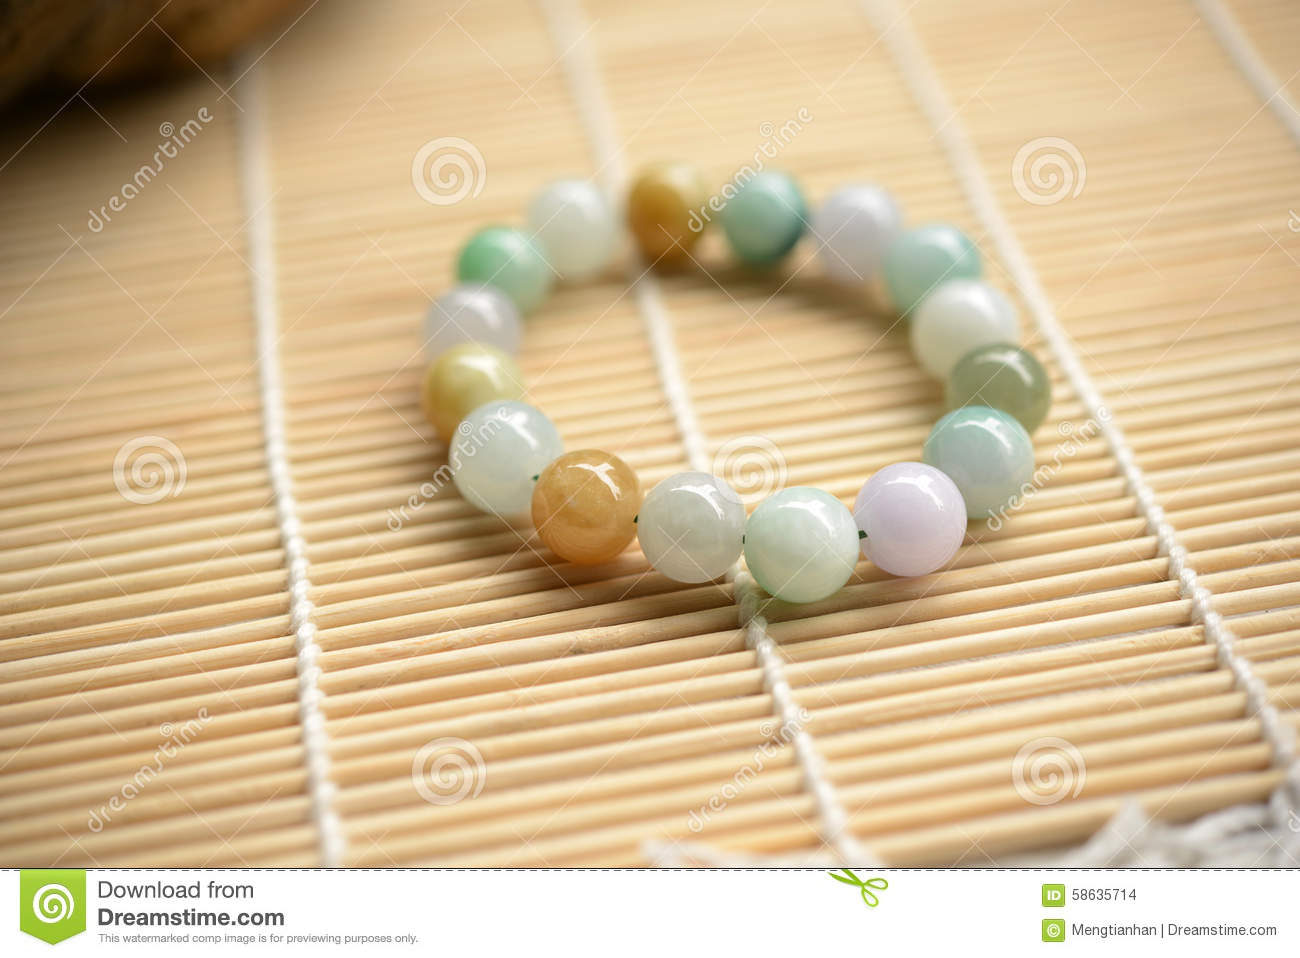 dff678a8598cf Bracelet of jade beads stock photo. Image of life, fortune - 58635714